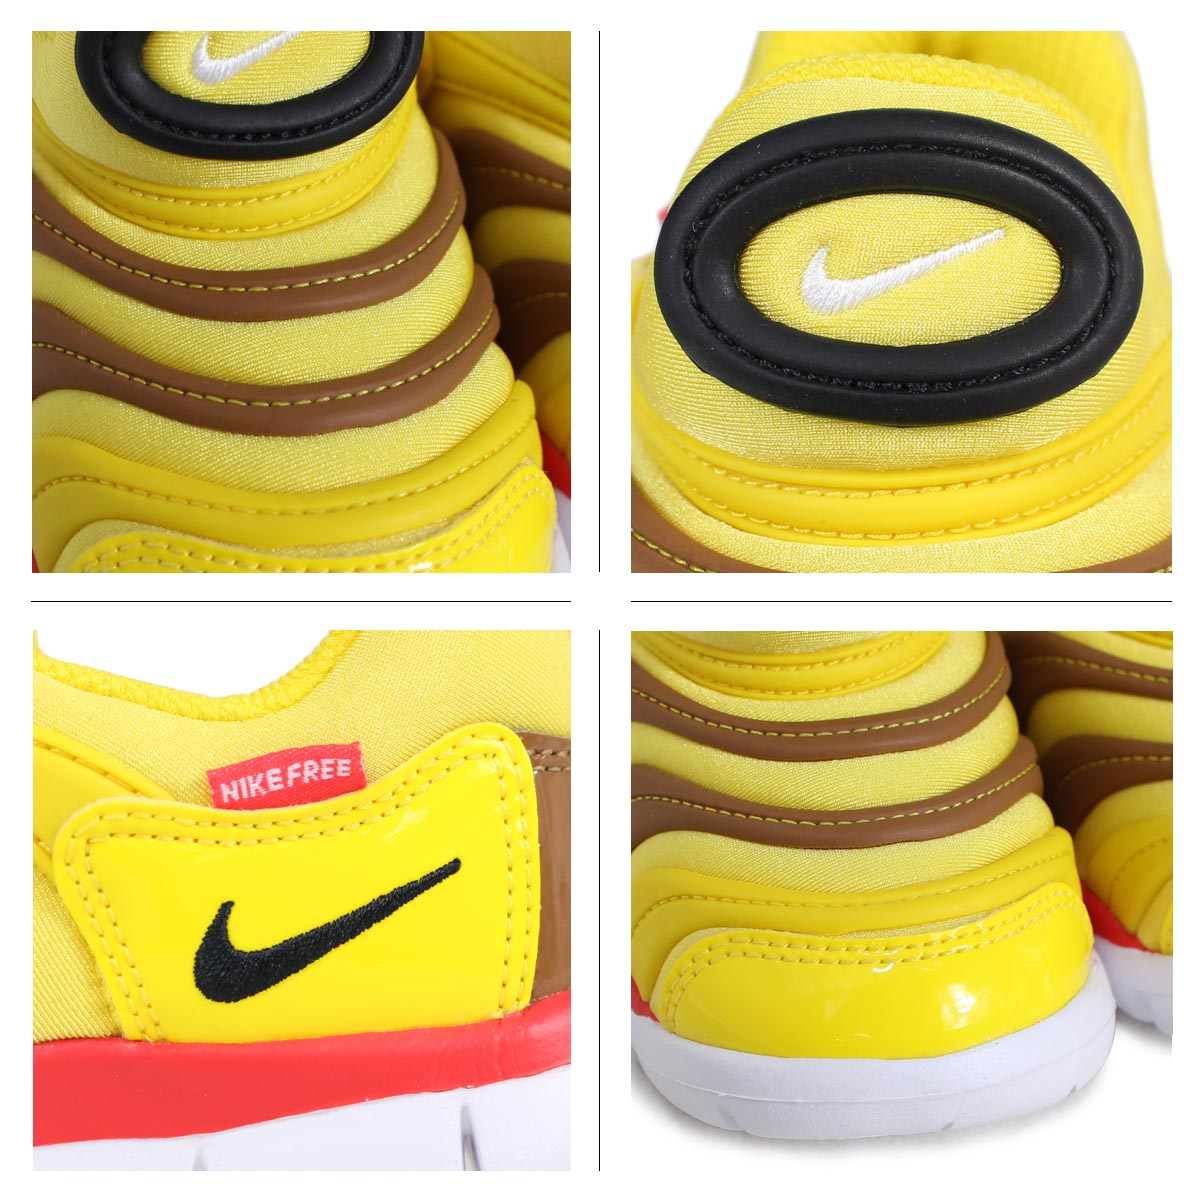 sneak online shop nike nike dynamo free baby sneakers dynamo free td 343 938 703 yellow 1 26. Black Bedroom Furniture Sets. Home Design Ideas